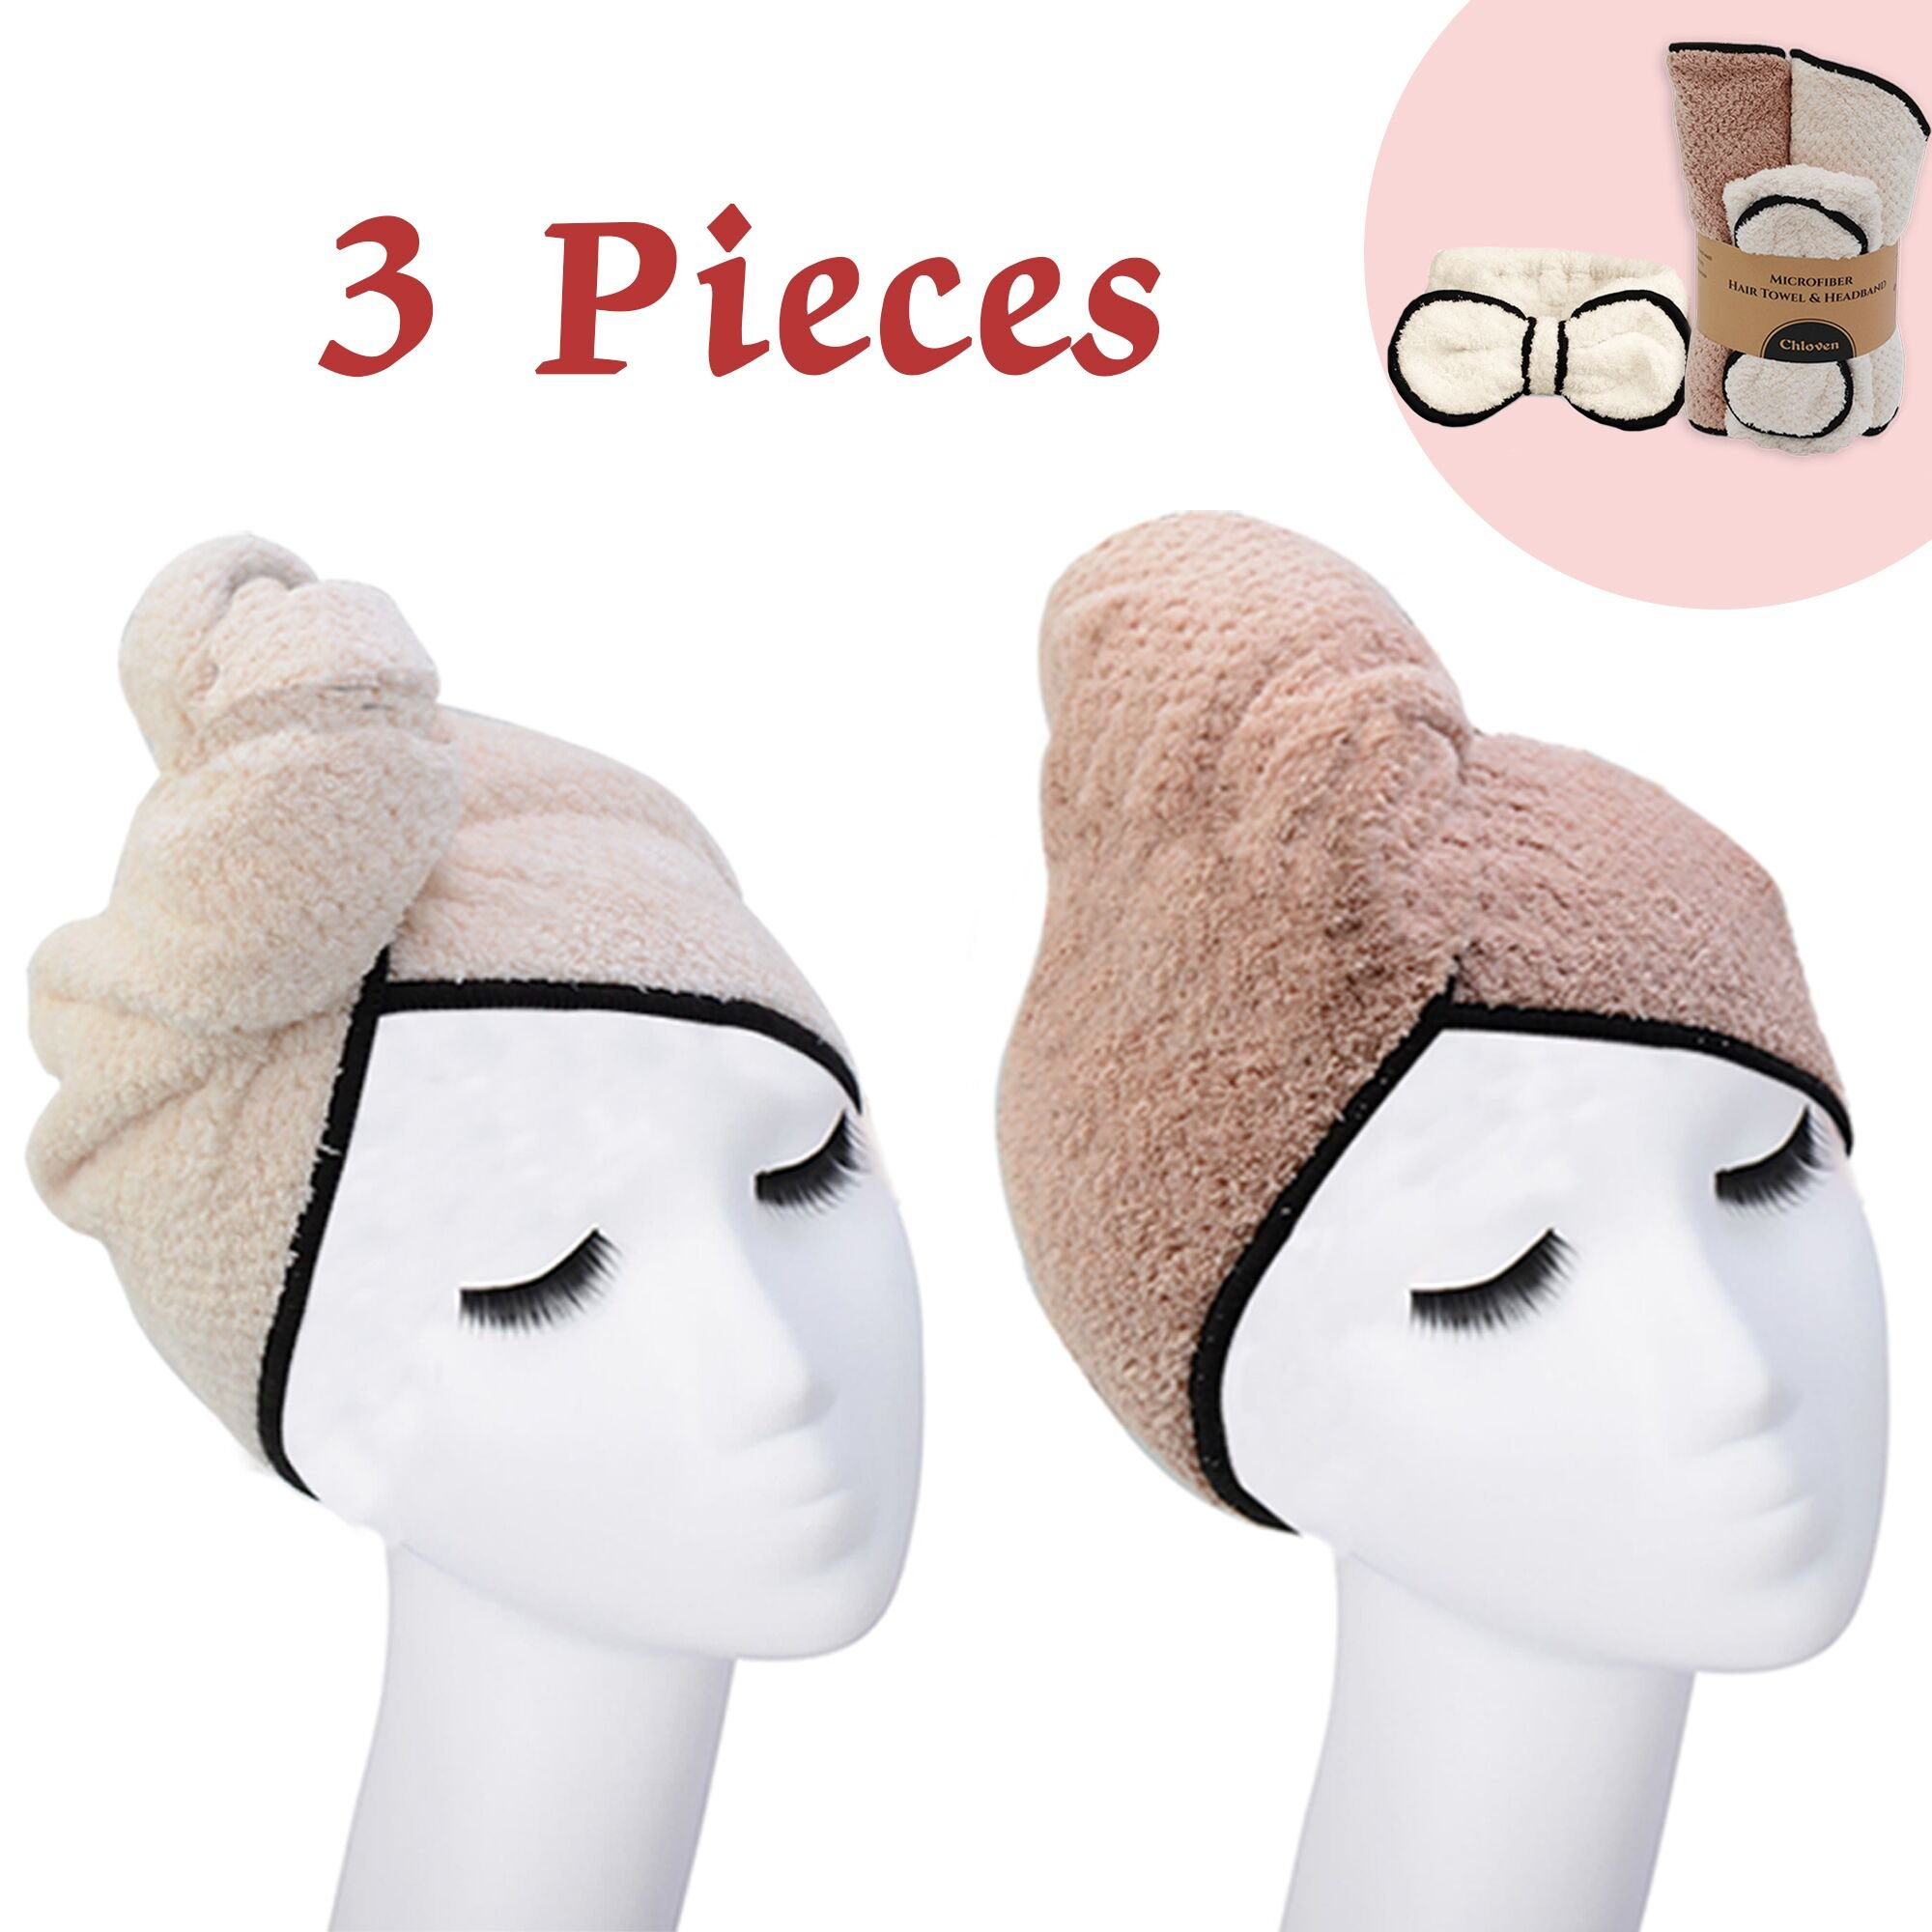 3-Piece Suit Large Hair Dry Towel Cap Twist Hair Turban Wrap Drying Cap Fast Quick Drying Super Absorbent Microfiber Soft Shower Towels